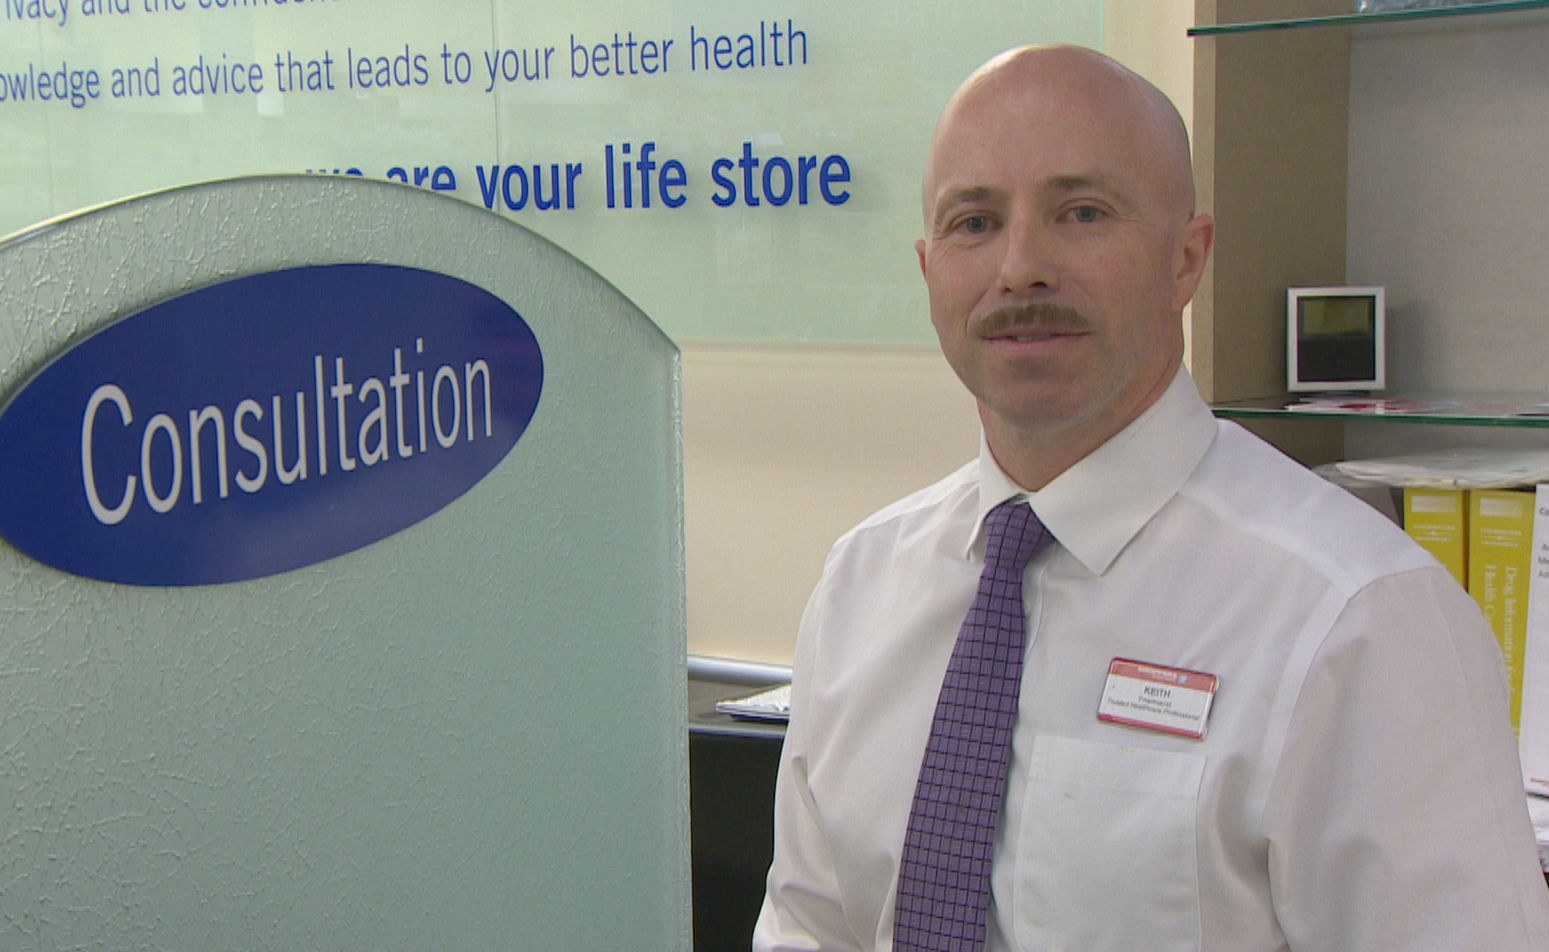 Keith Bailey is a pharmacist at Shoppers Drug Mart in Conception Bay South. (Bruce Tilley/CBC)